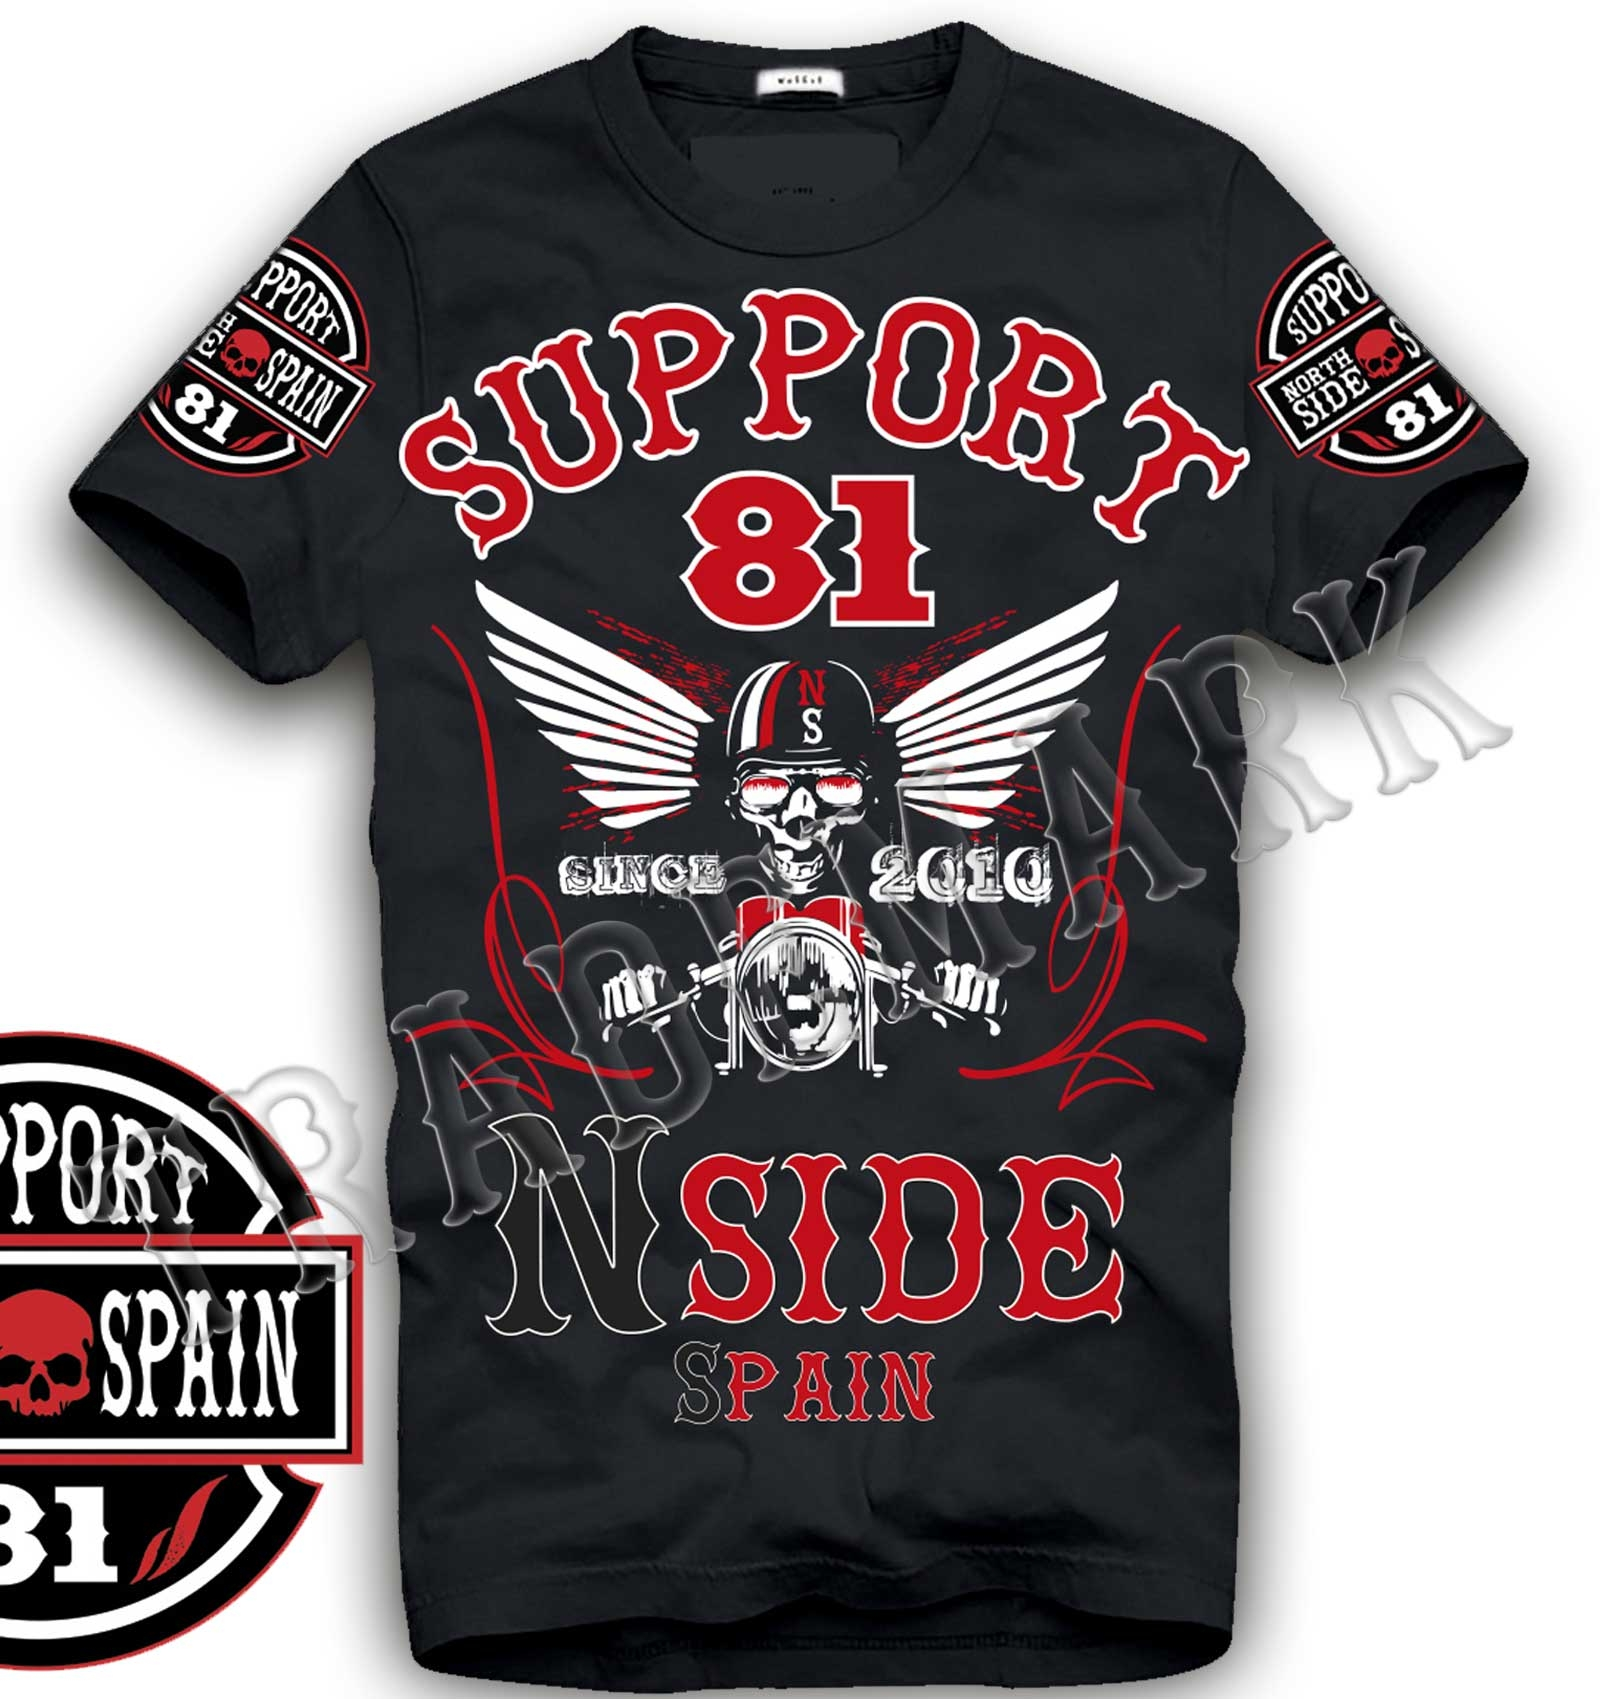 49 hells angels northside spain schwarz t shirt model 7. Black Bedroom Furniture Sets. Home Design Ideas